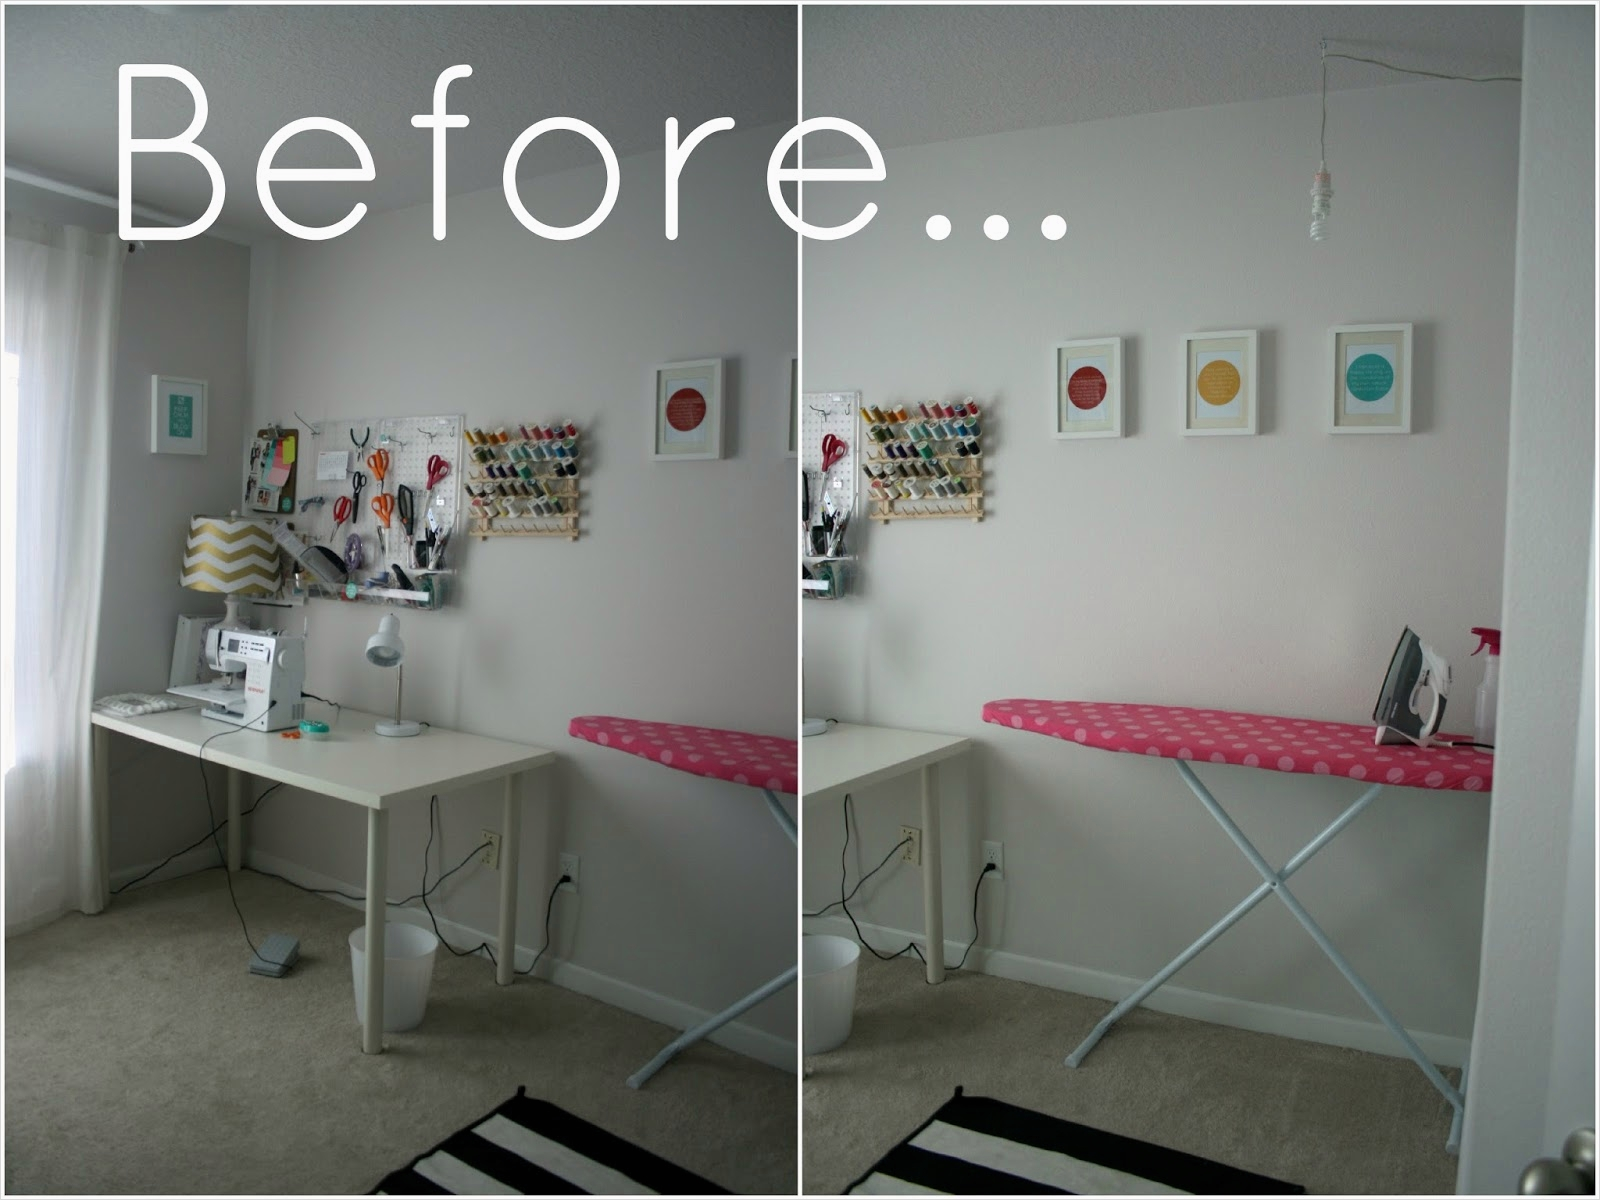 Sewing Room Ideas for Small Spaces 19 Small Room Design Modern Small Sewing Room Ideas Sewing Rooms In Small Spaces Sewing Room 9